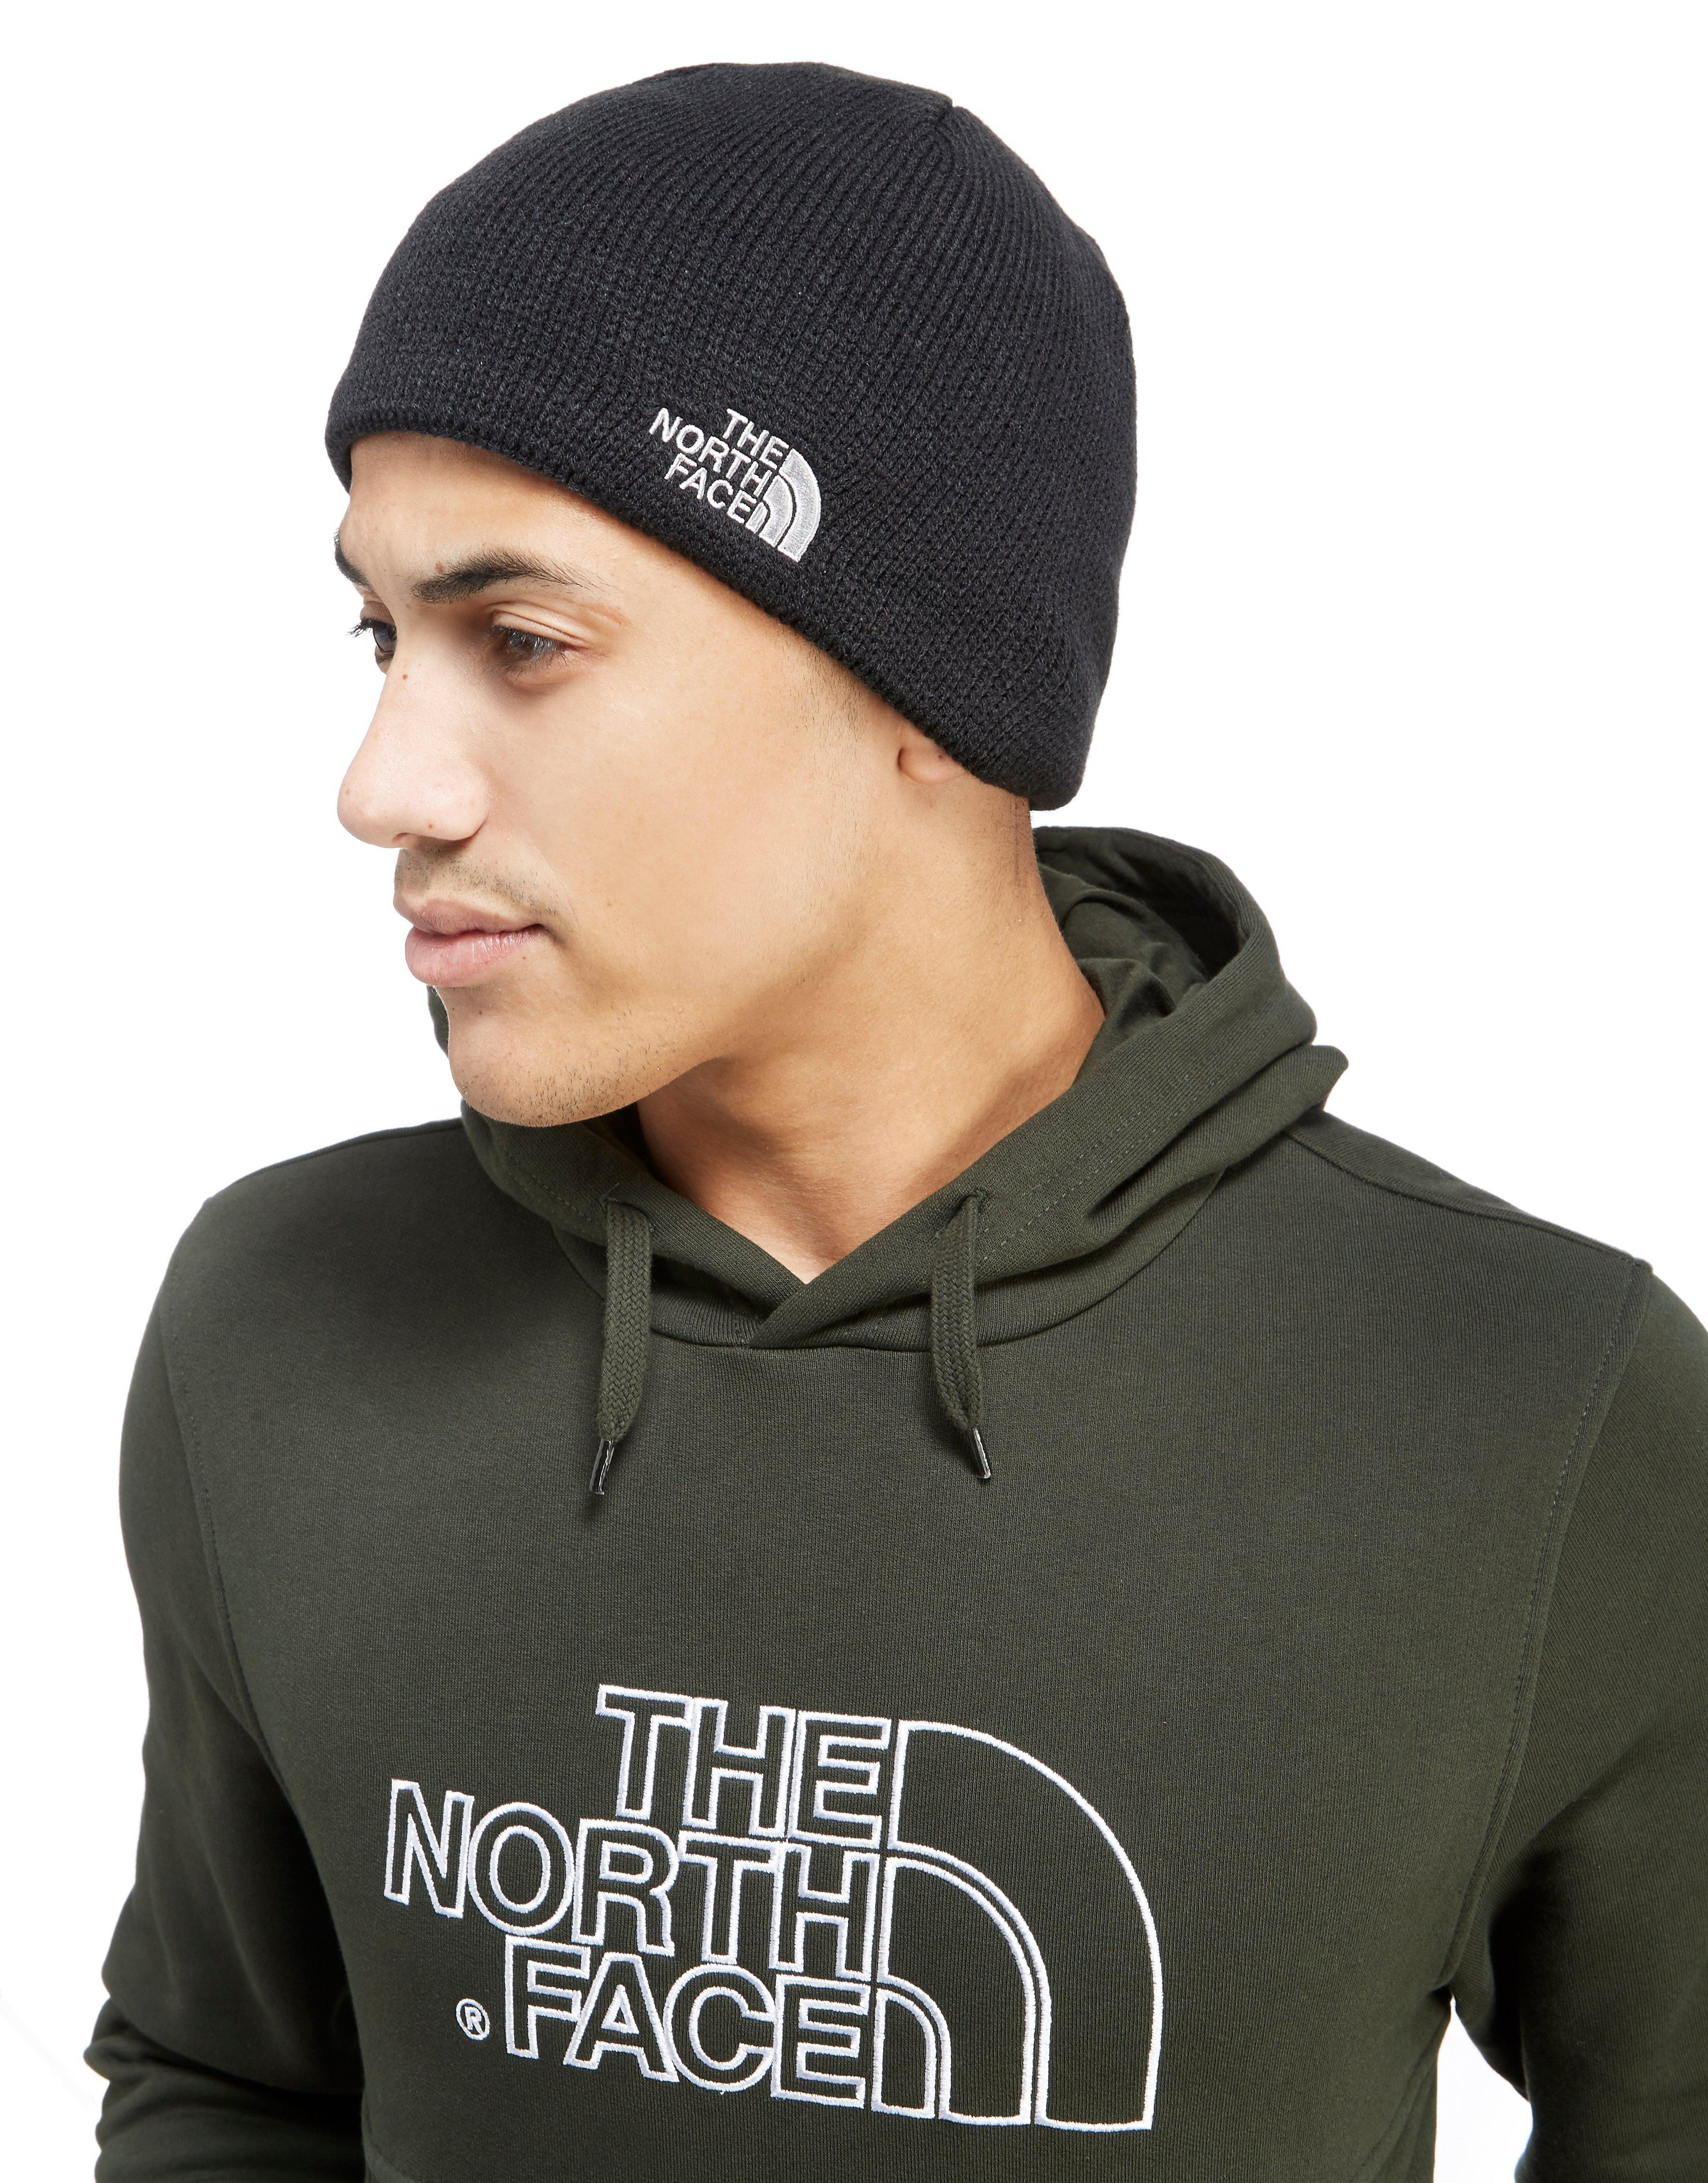 Lyst - The North Face Bones Beanie Hat in Black for Men fffc34a9a79